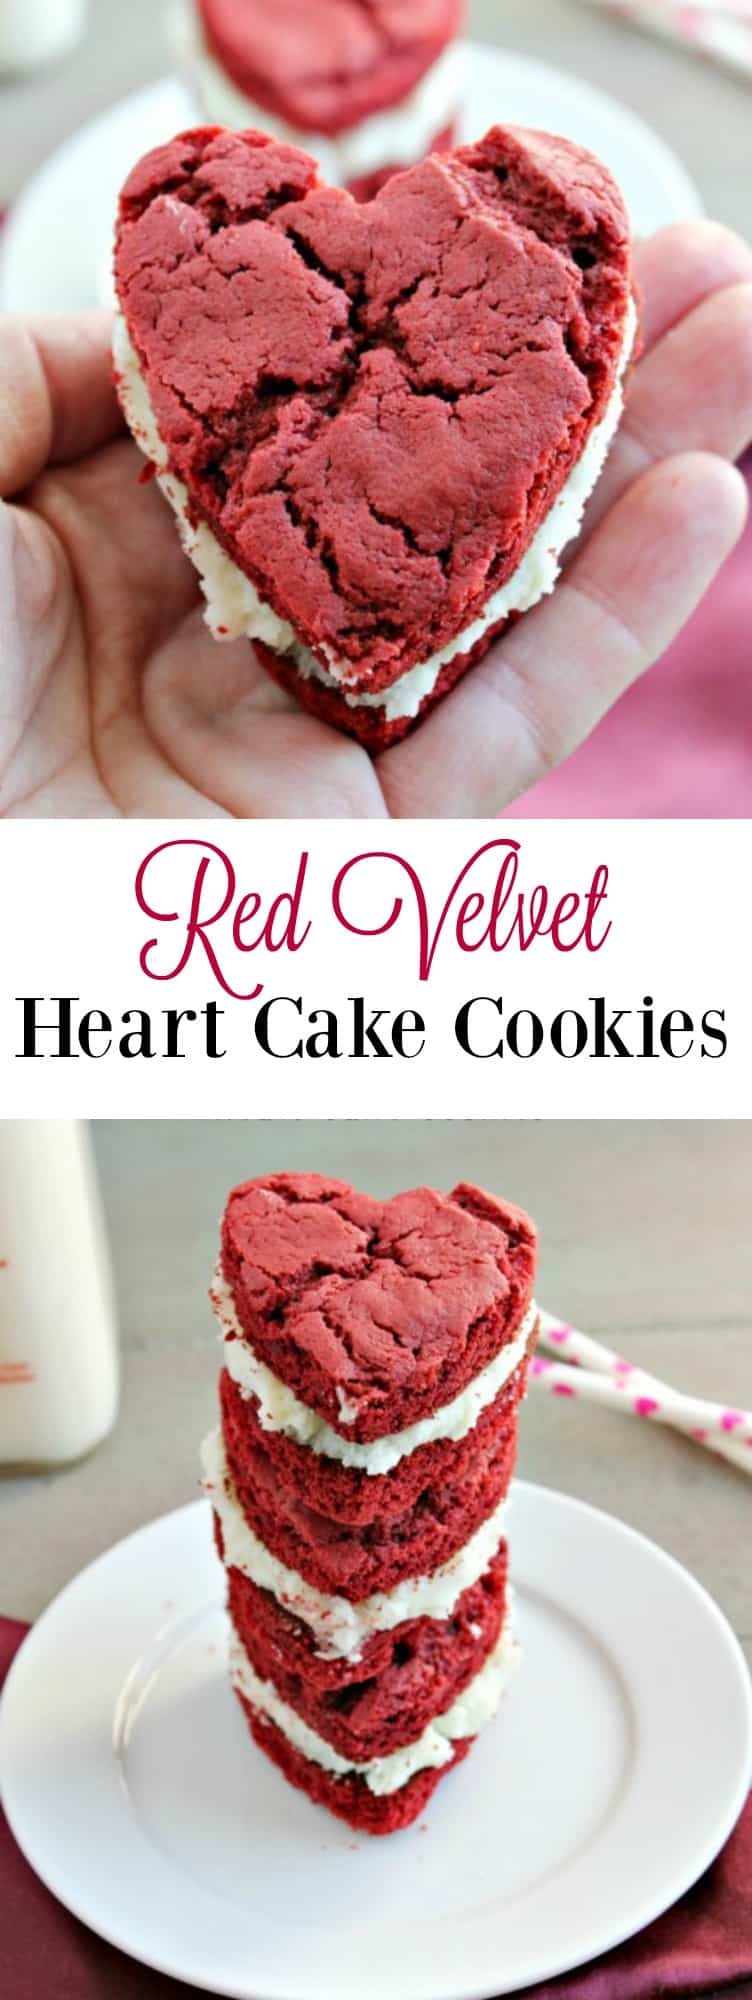 Red Velvet Heart Cake Cookies are the perfect dessert to make for Valentine's Day.